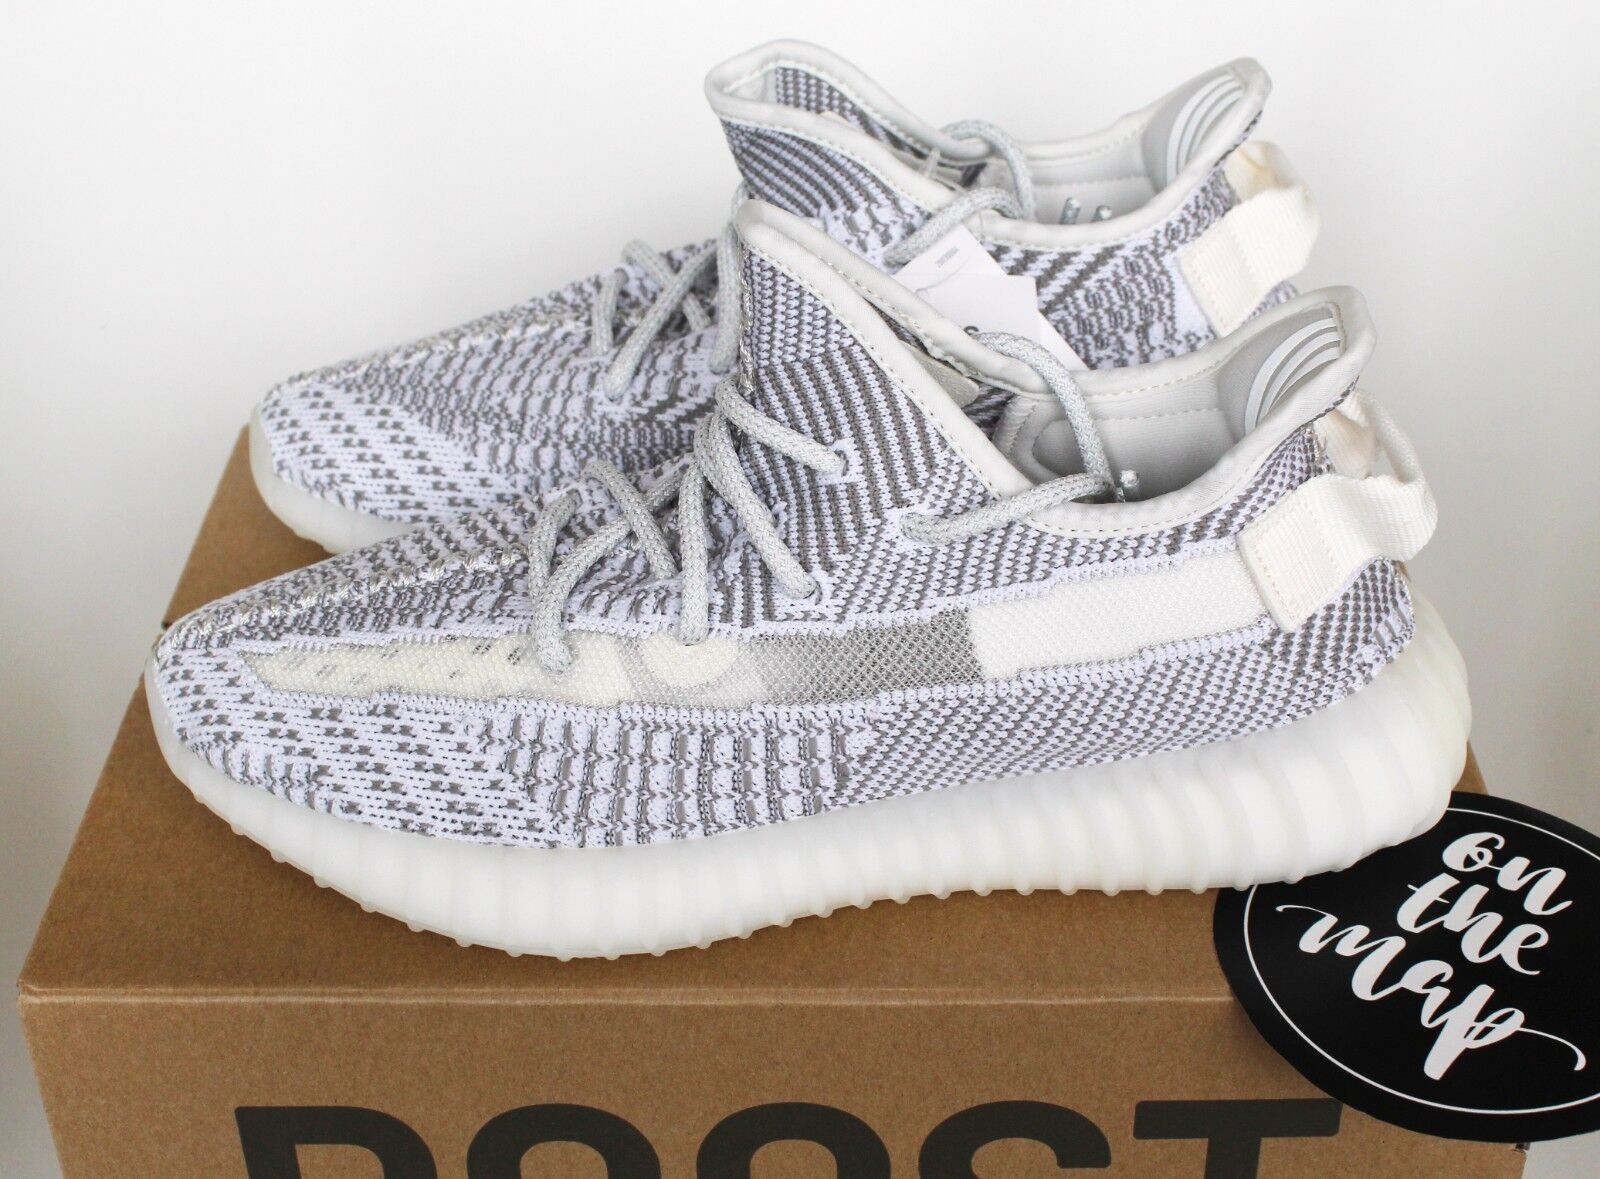 Adidas Yeezy Boost 350 V2 Static no reflectante 3 4 5 6 7